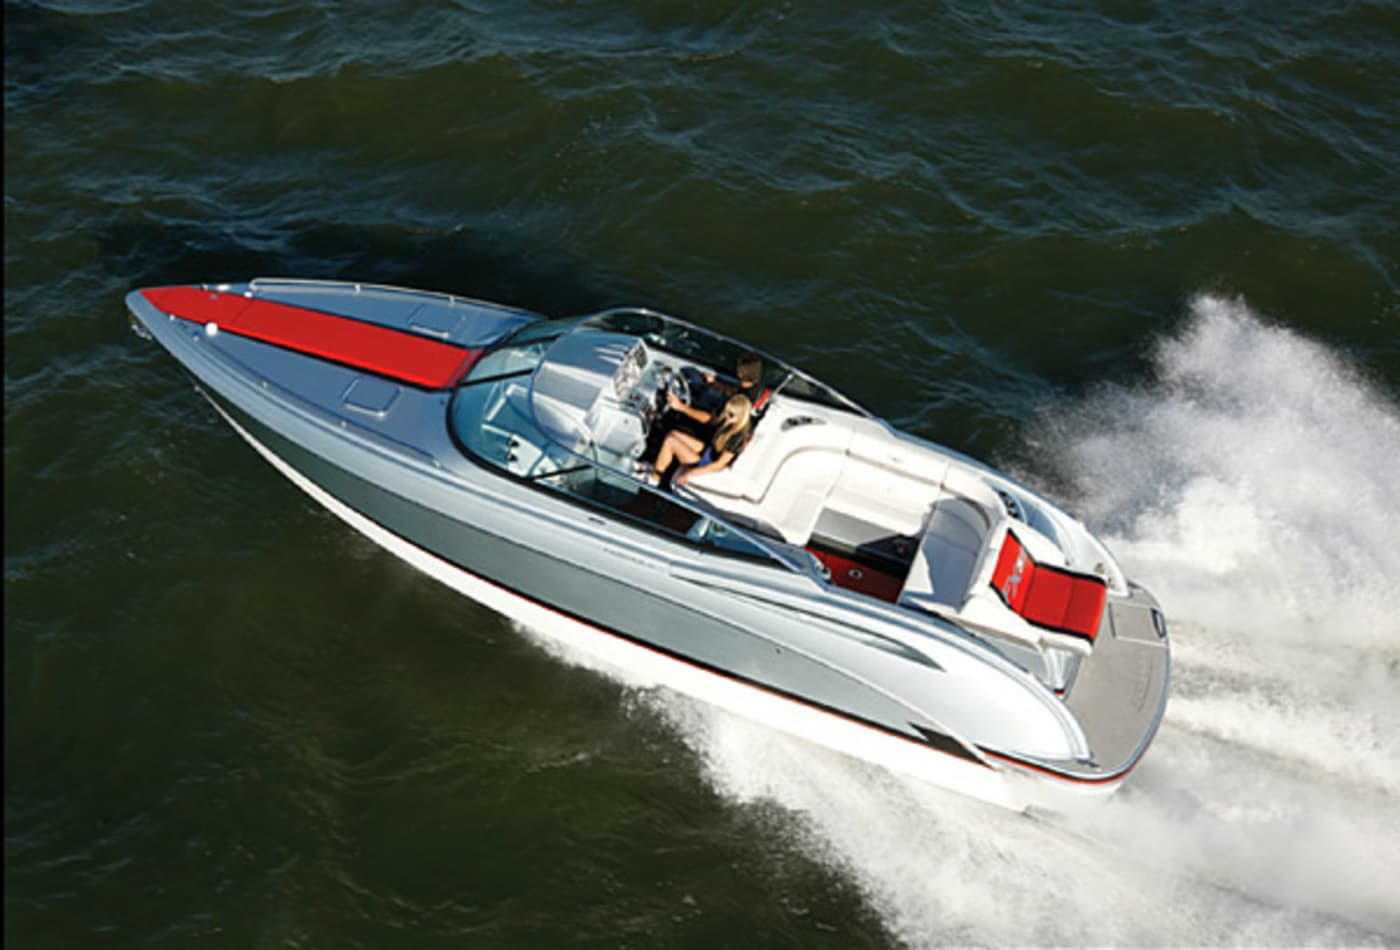 Scenes-from-2012-boat-show-formula.jpg